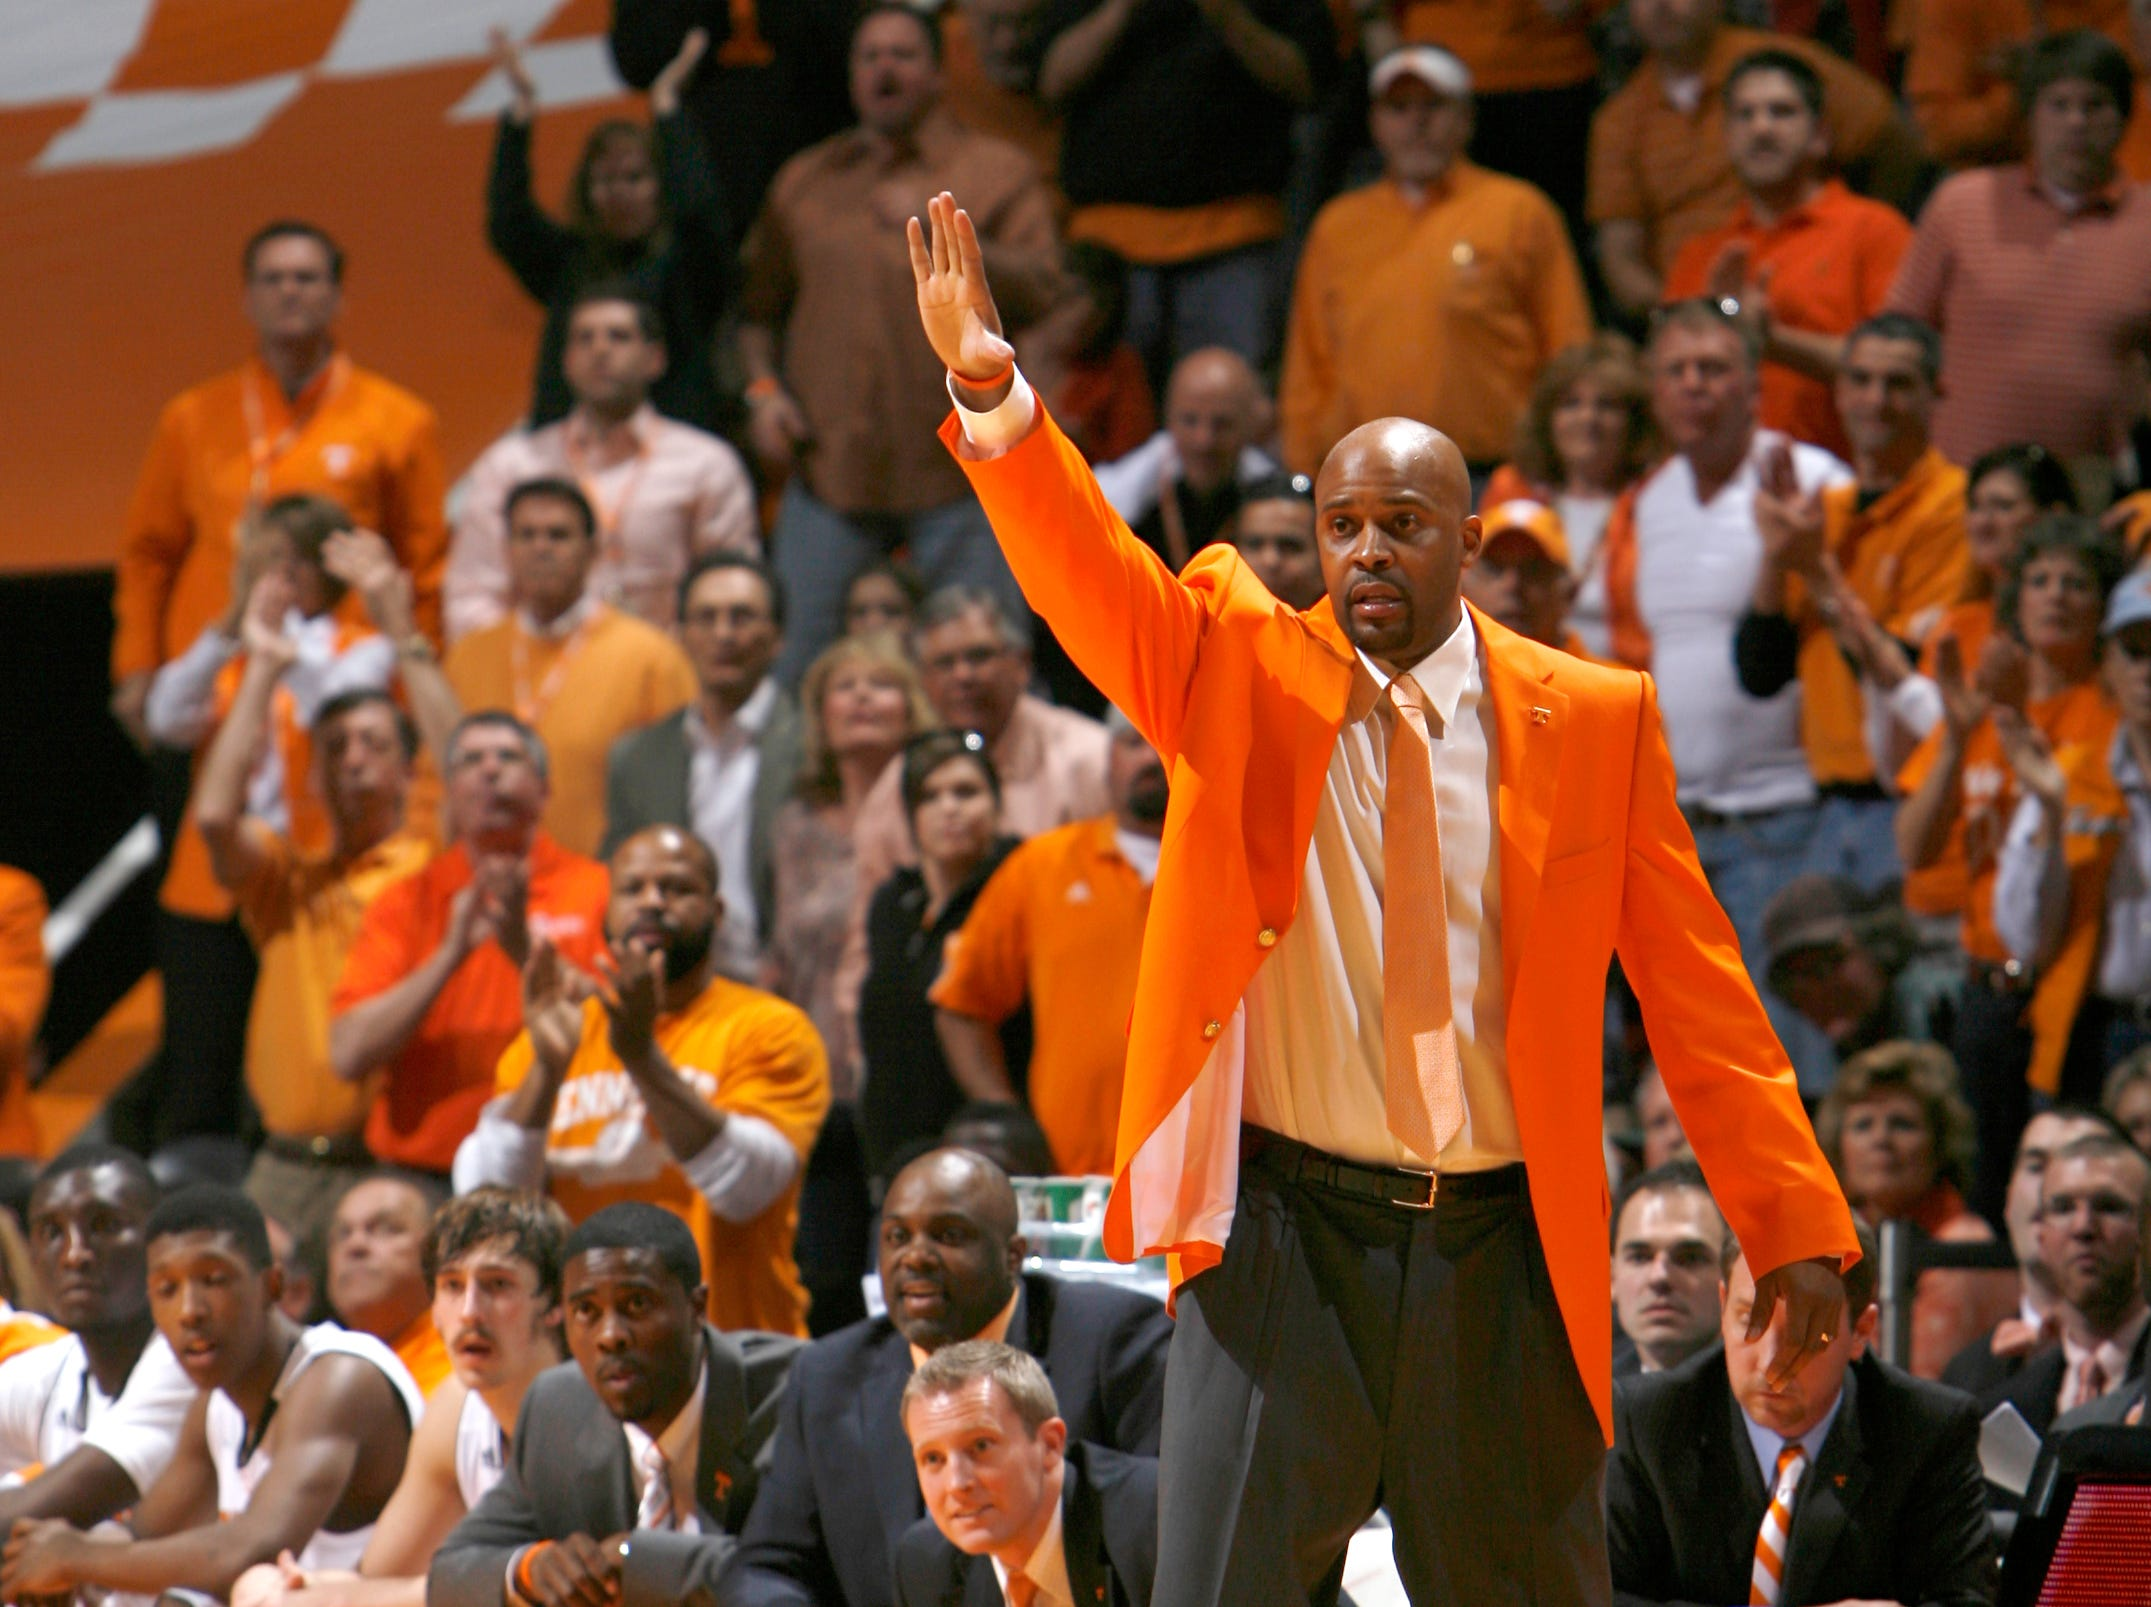 Tennessee head coach Cuonzo Martin calls to his players during the second half against Vanderbilt at Thompson-Boling Arena Saturday, March 3, 2012.  Tennessee won 68-61 over Vanderbilt.